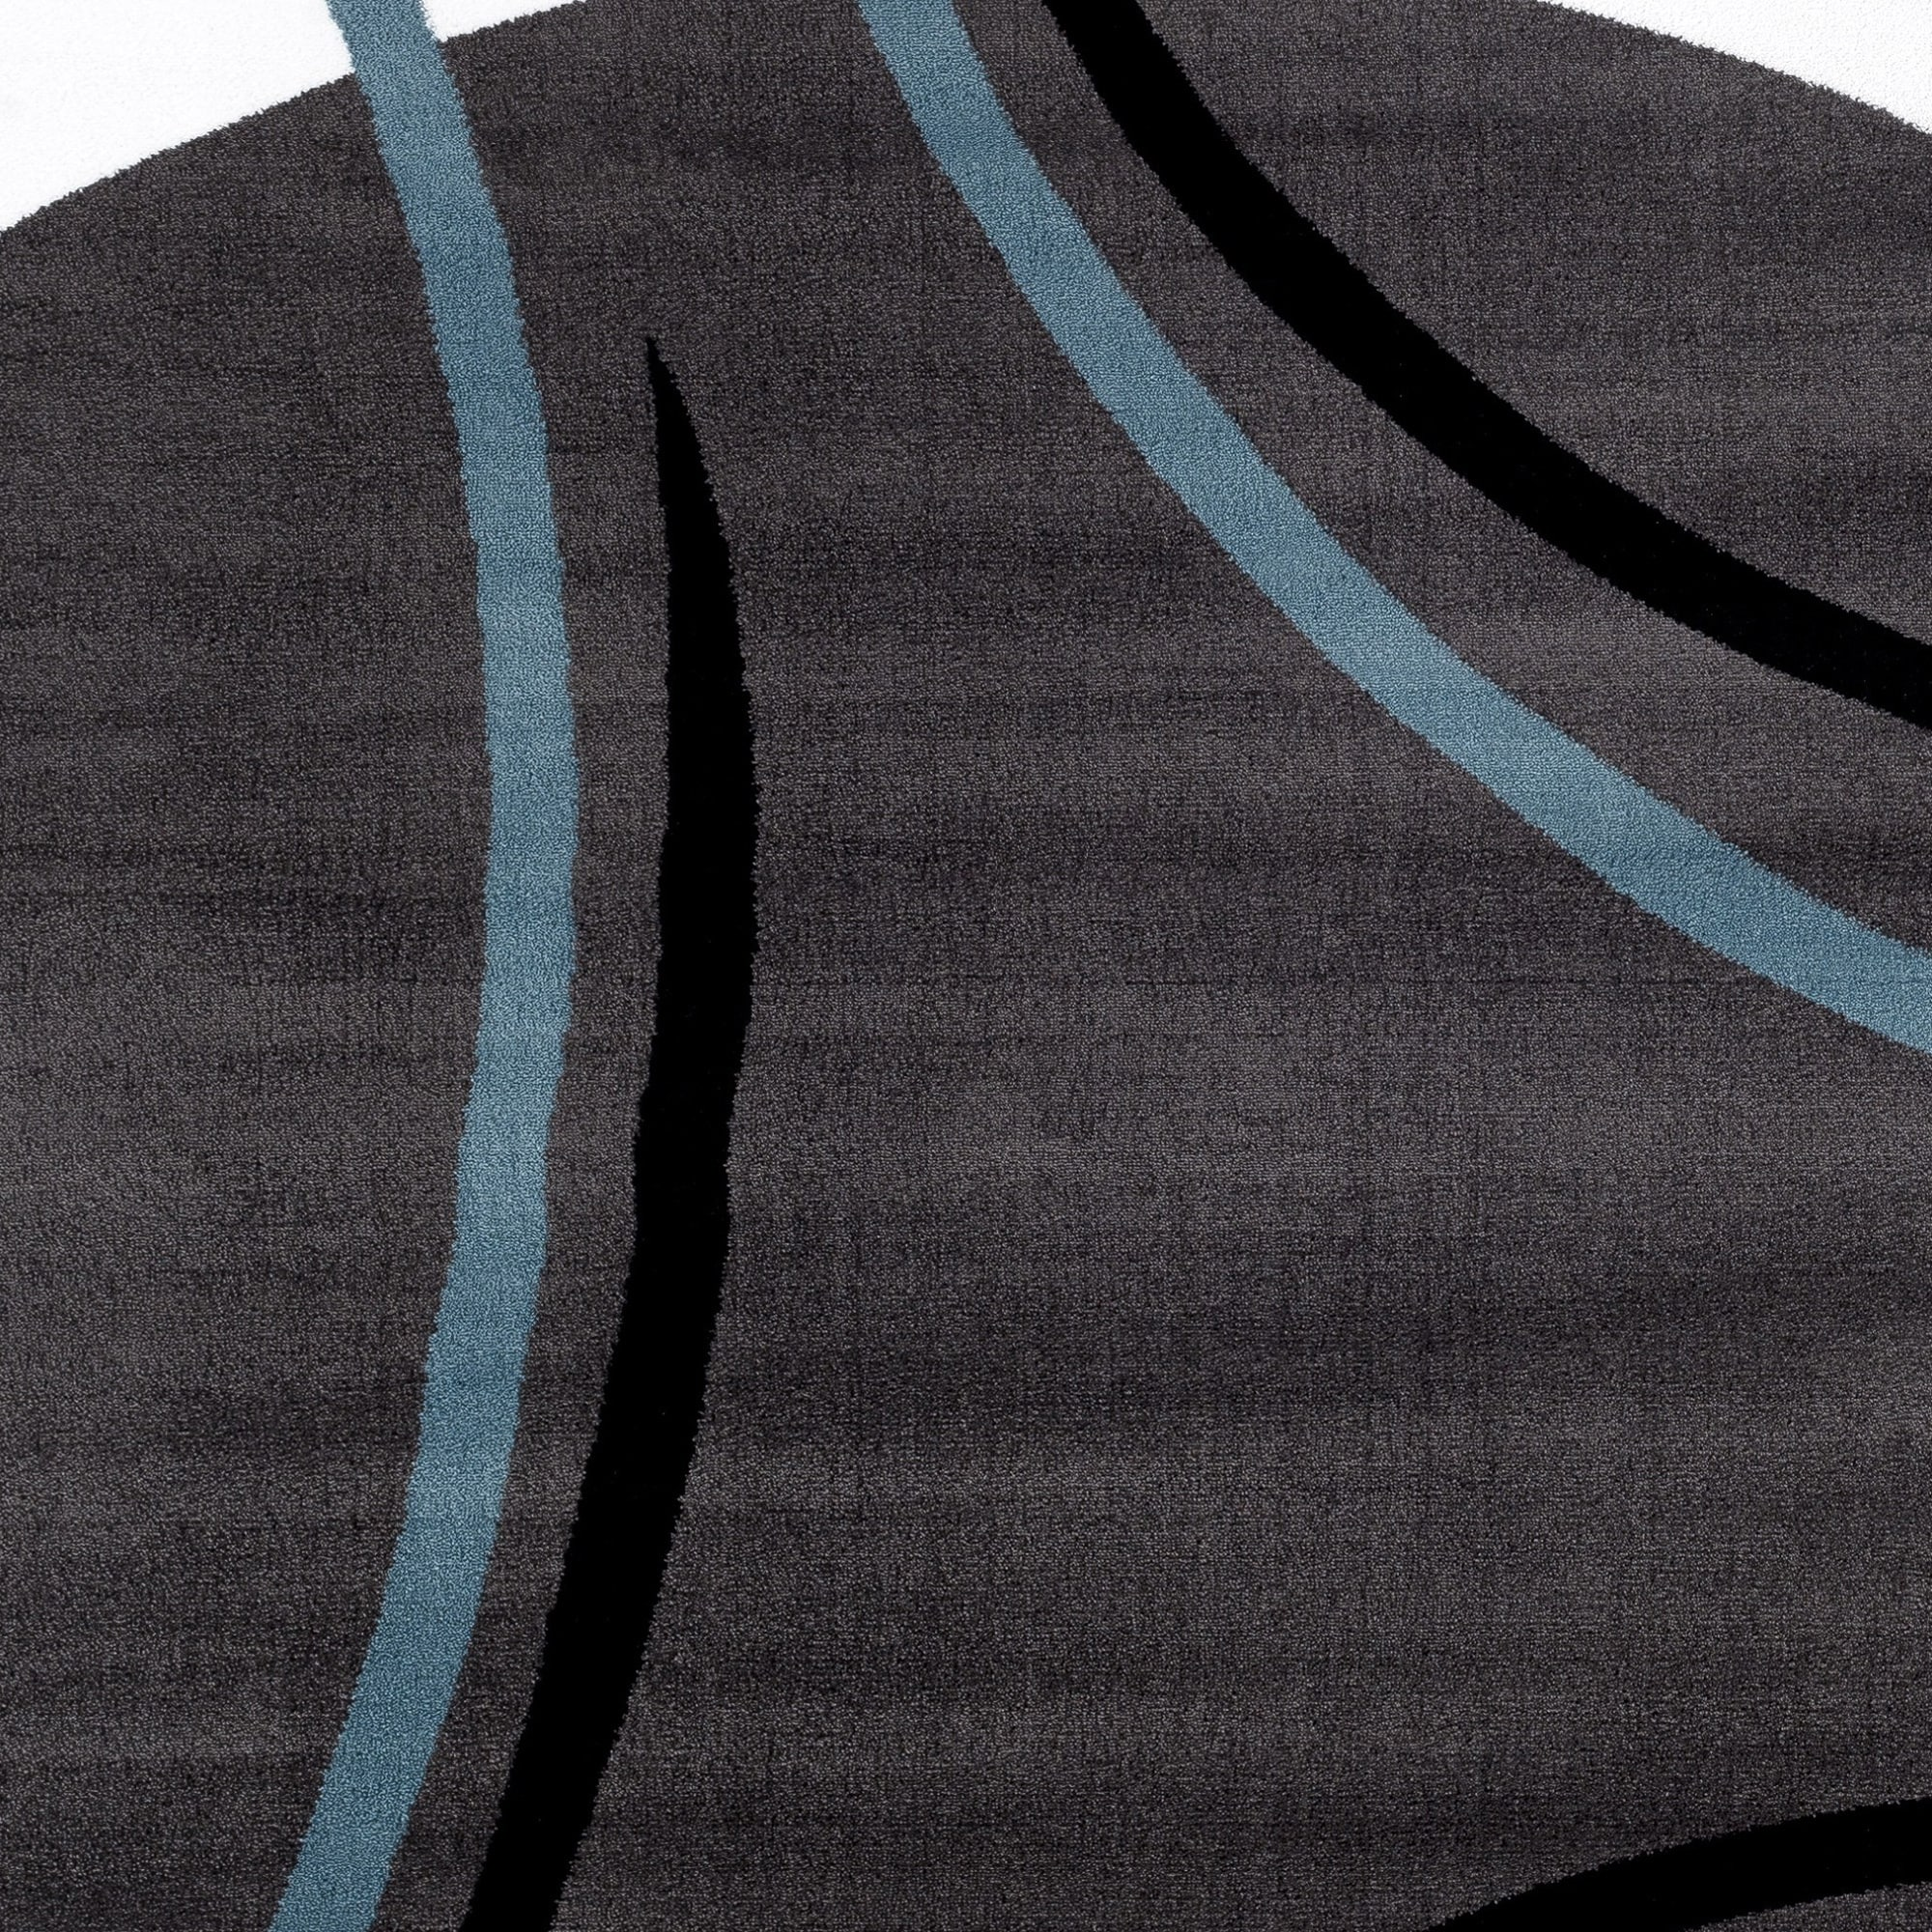 Contemporary Modern Wavy Circles Indoor Area Rug or Runner